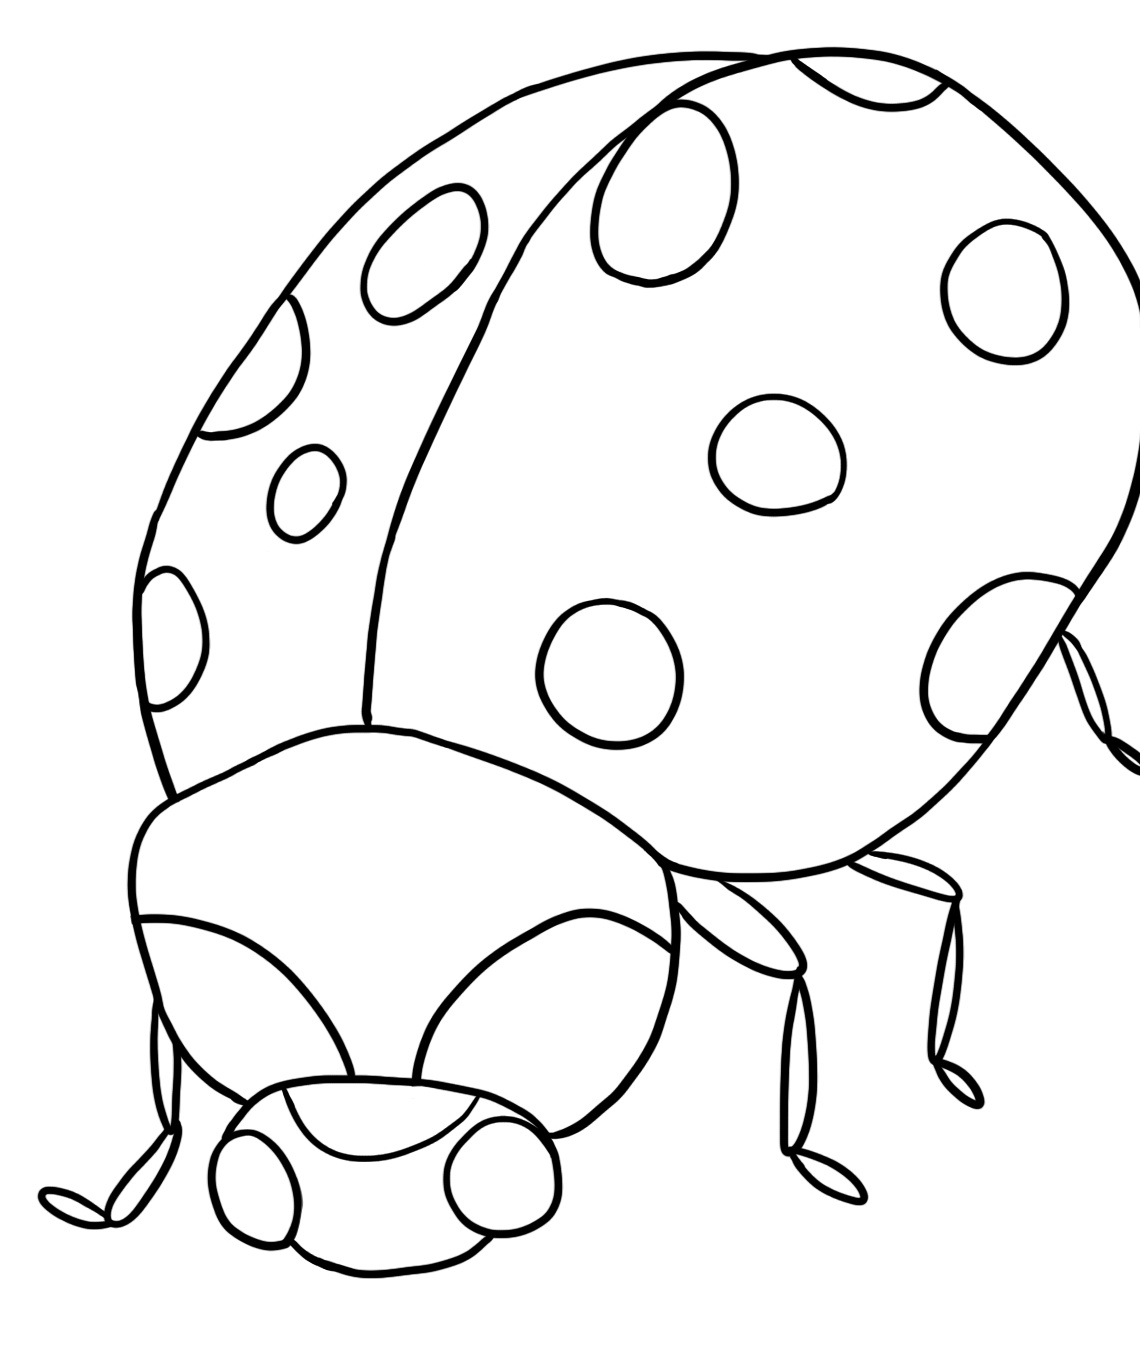 ladybug pictures for kids